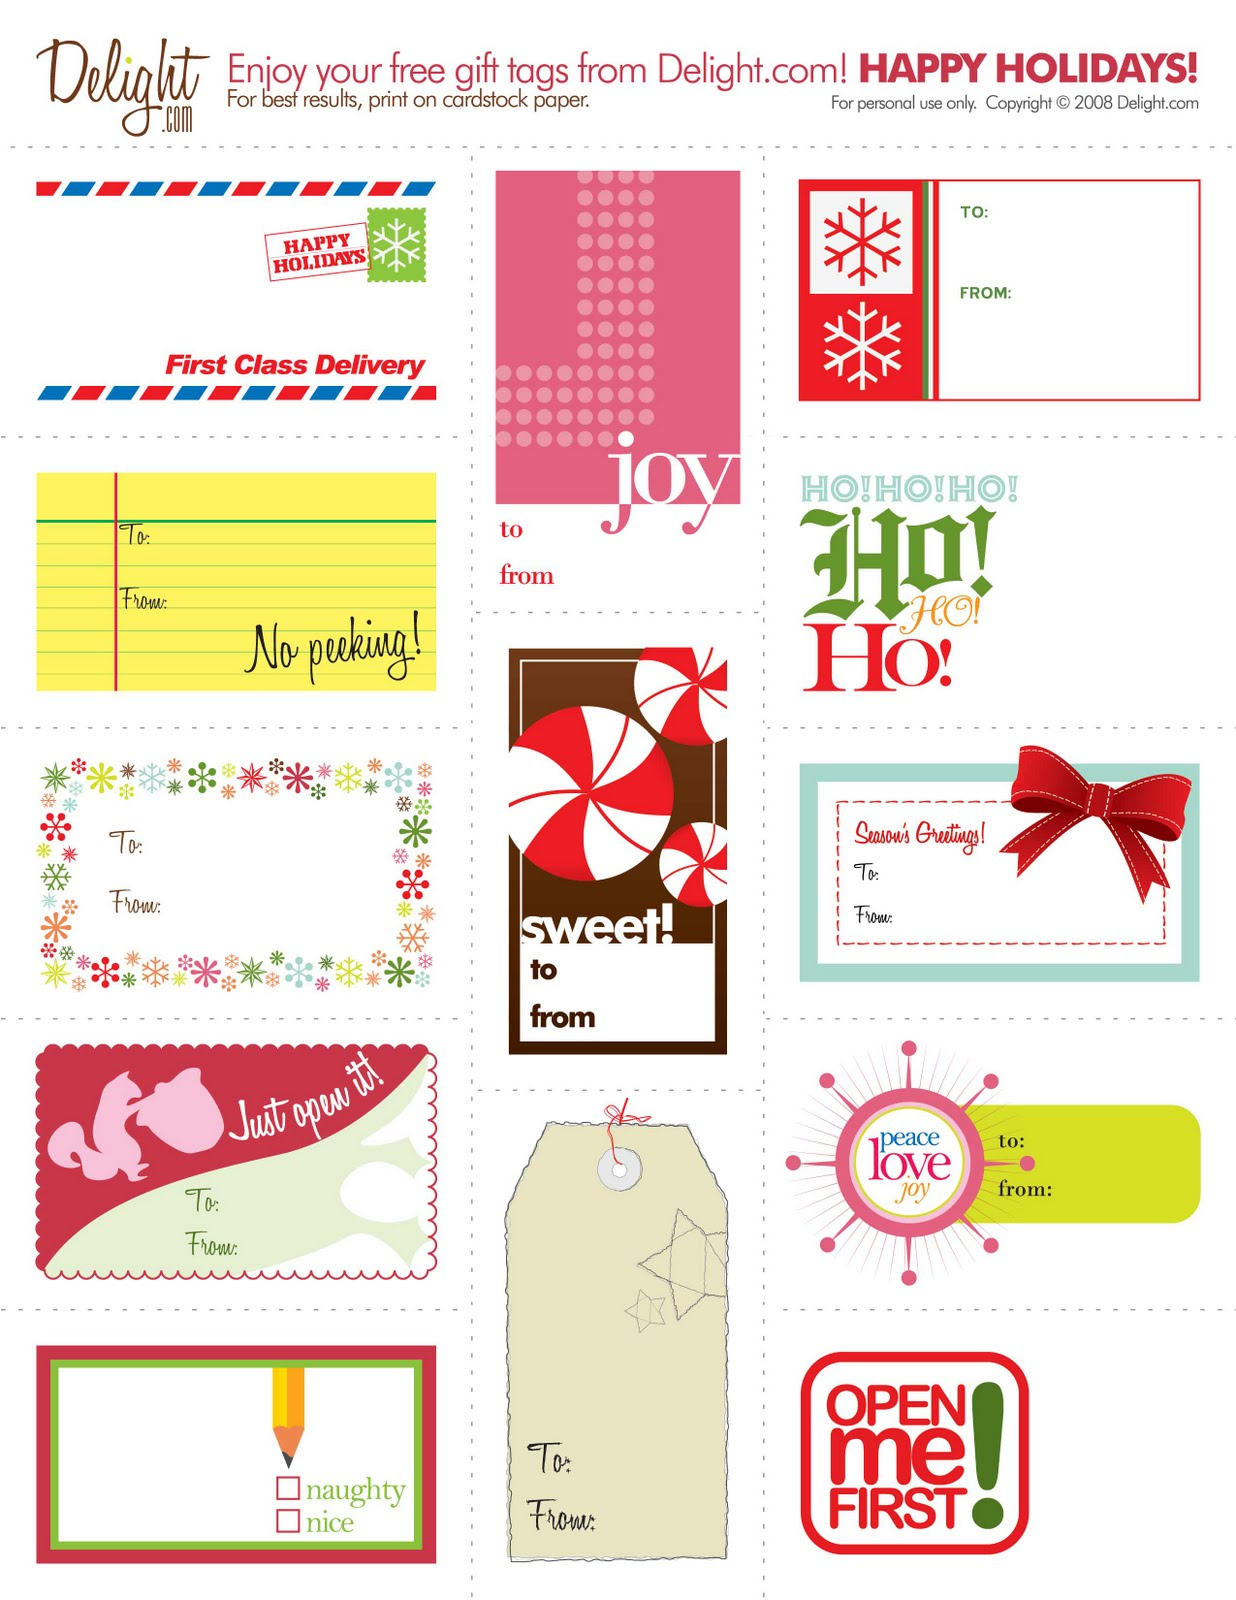 martha stewart gift tag template - the creative place diy free printable gift tags